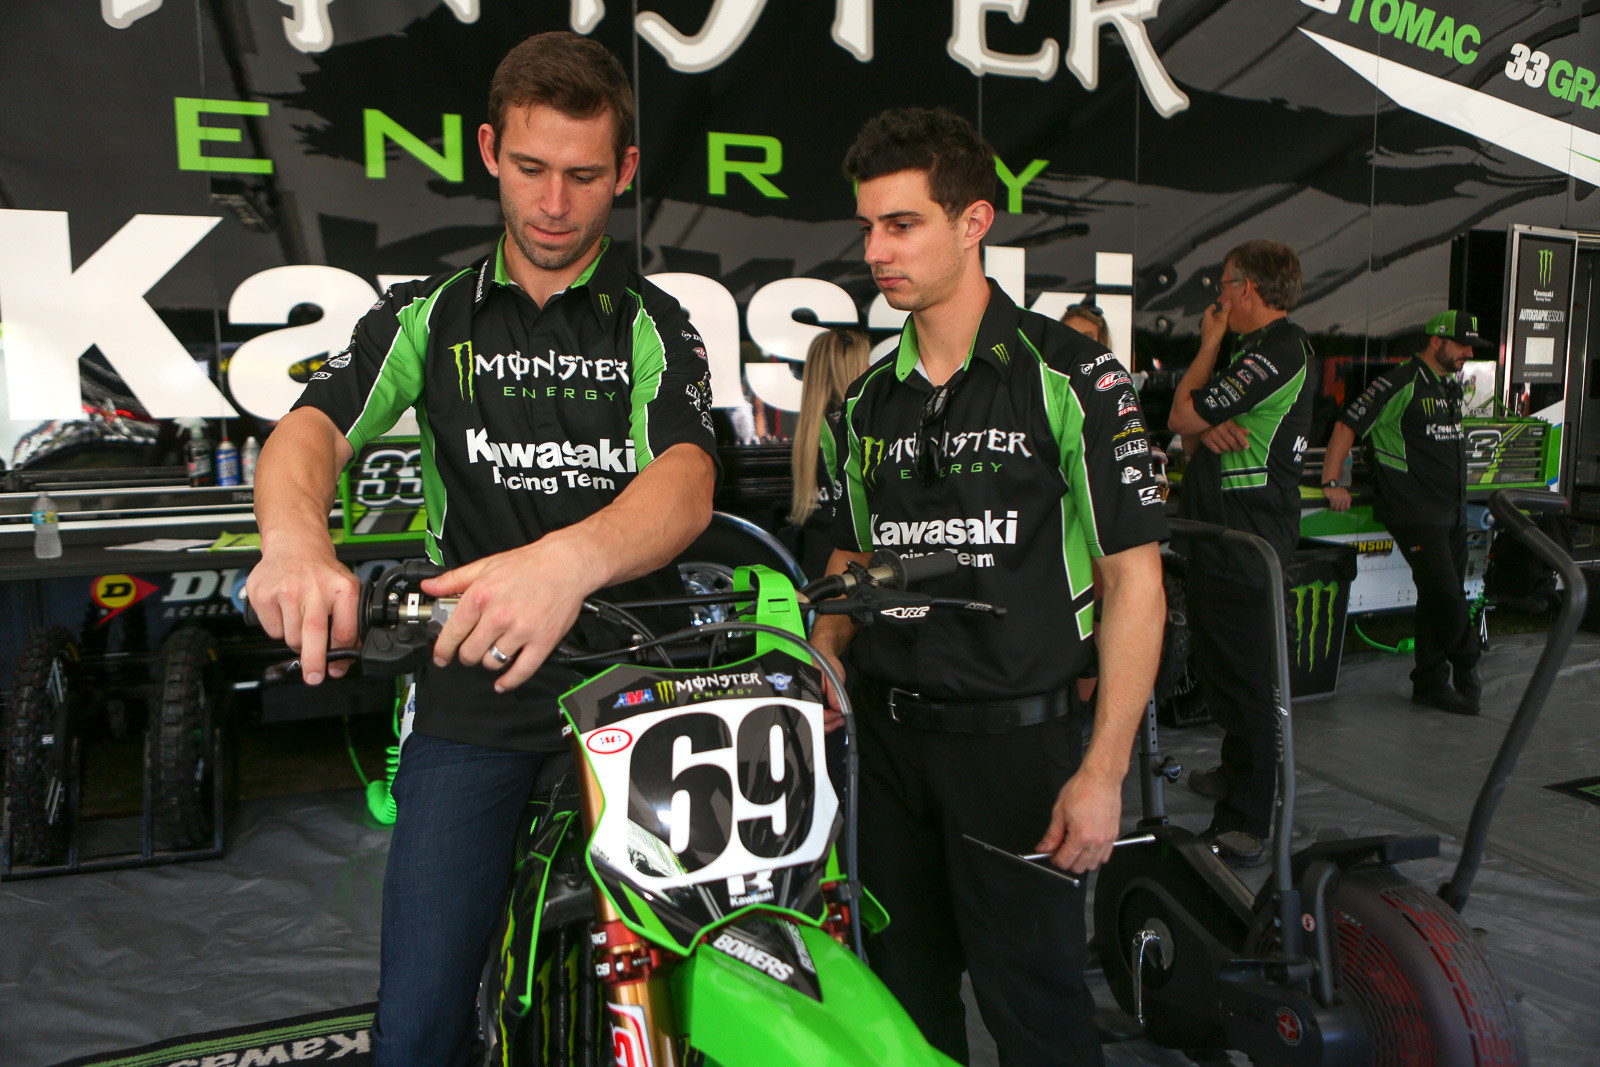 Tyler Bowers is filling in for Josh Grant over at Monster Energy Kawasaki after Josh's unfortunate ankle leg injury in practice at Dallas.